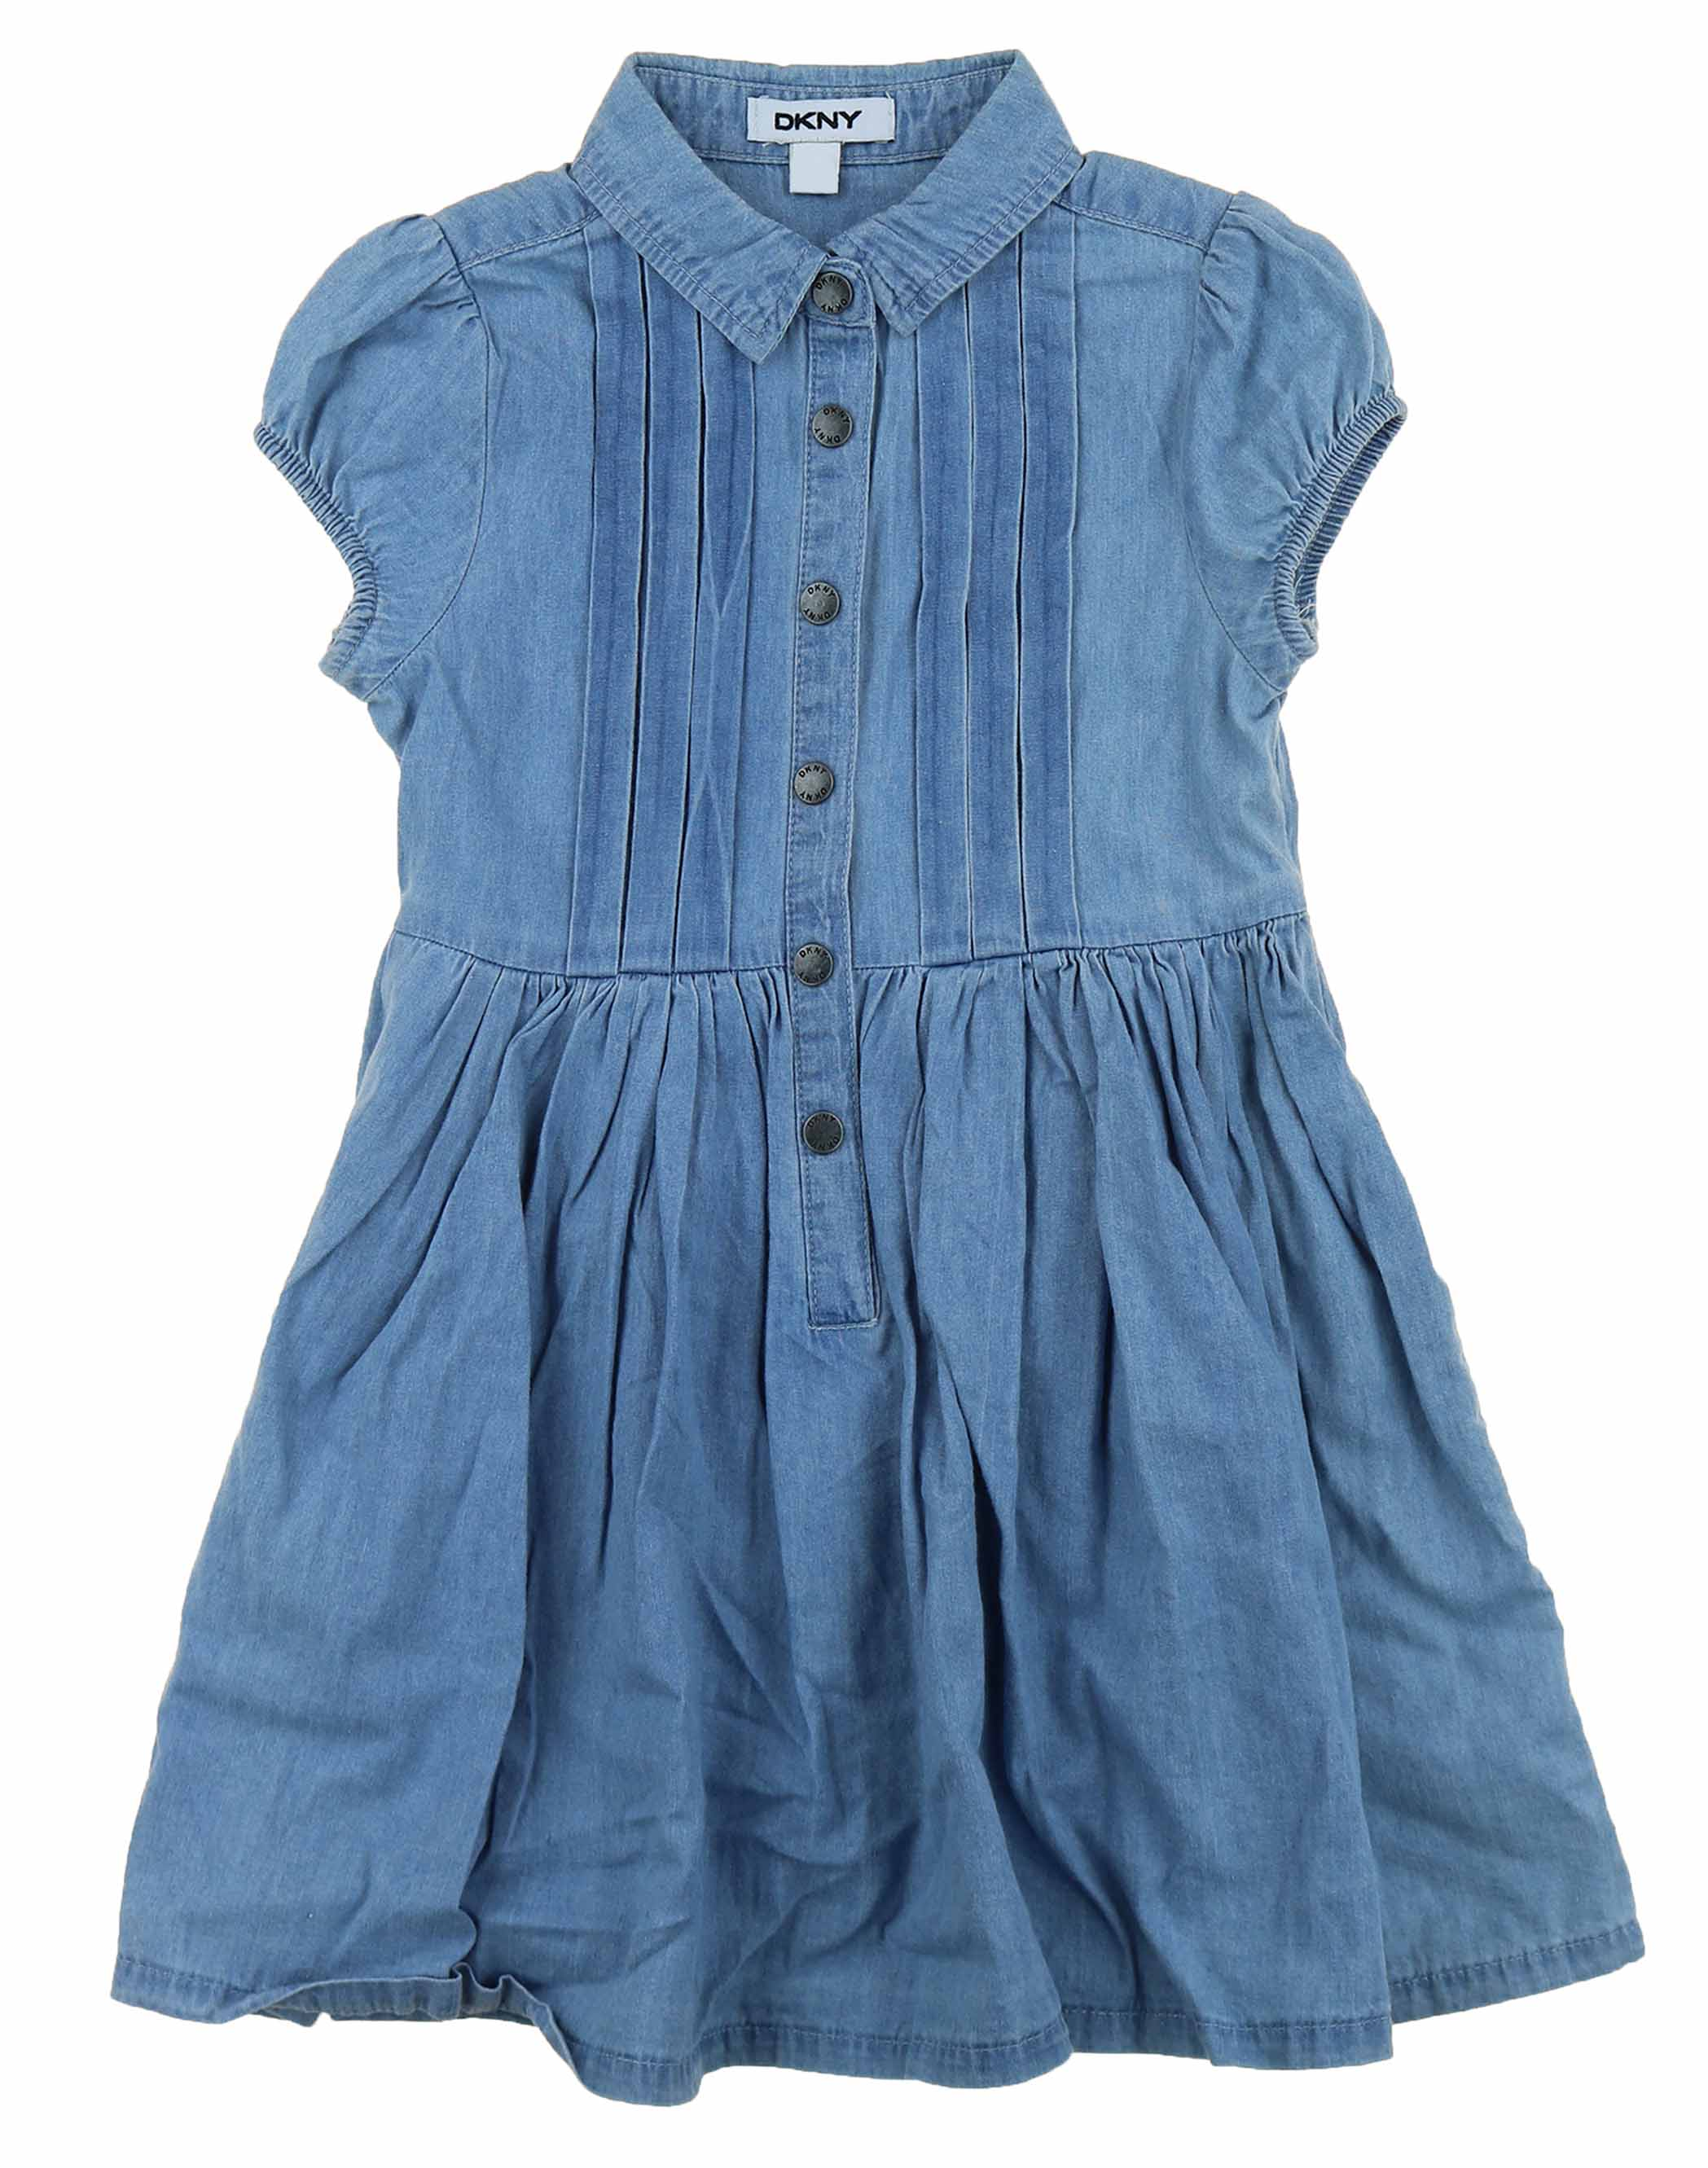 bb6f8503536 DKNY-Girls-Denim-Dress-or-Romper thumbnail 30